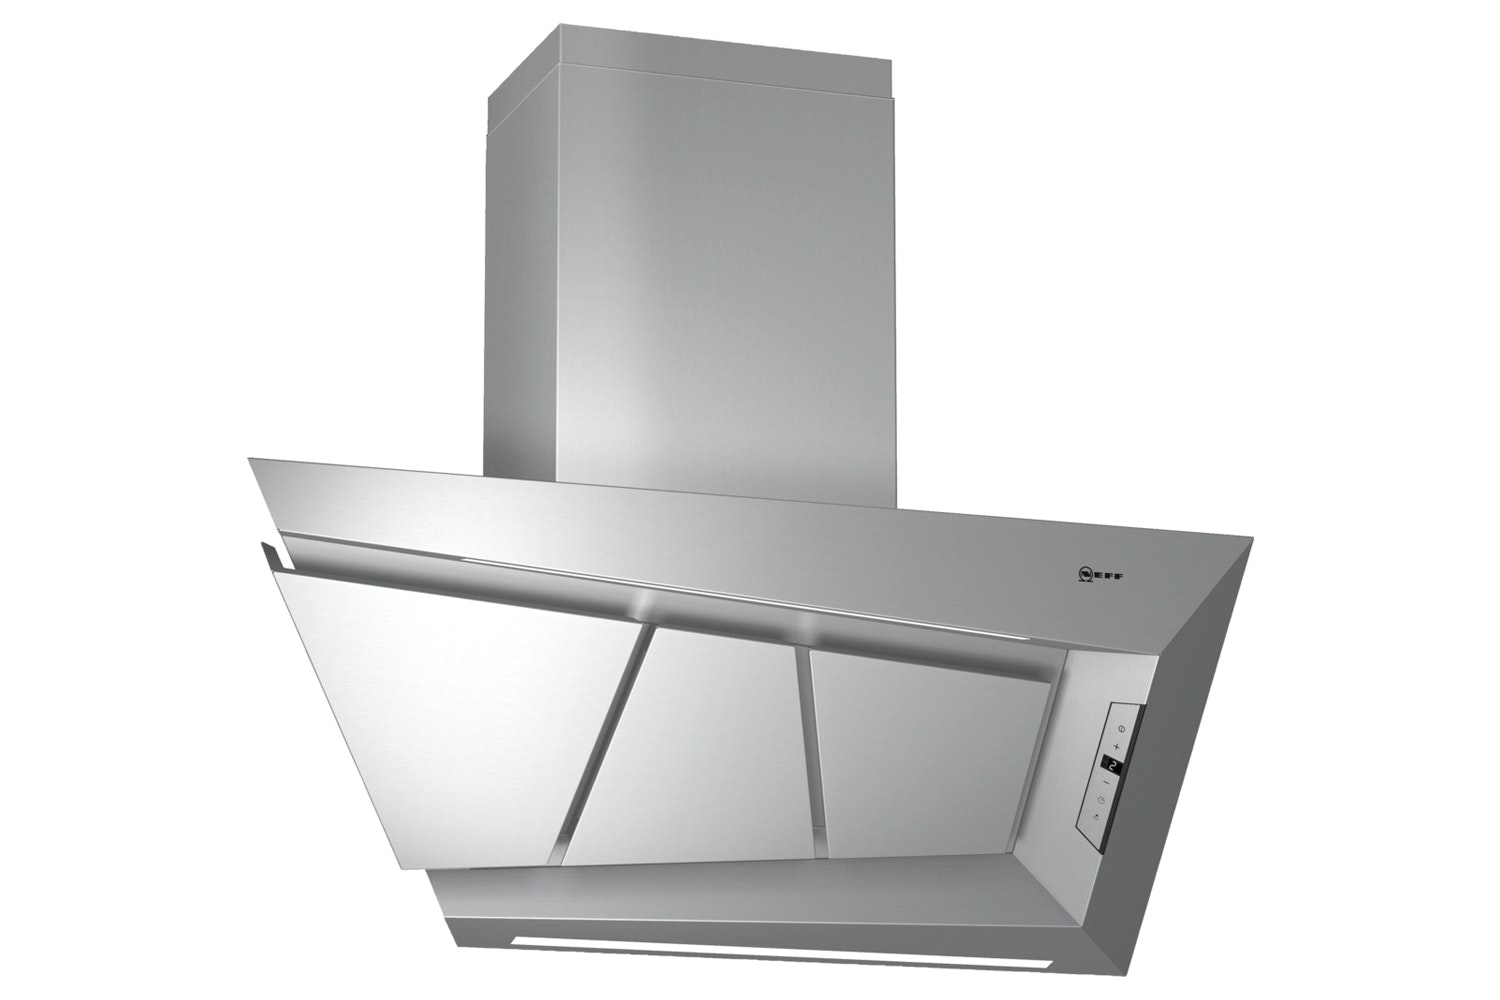 Neff 100cm Chimney Hood | D99L20N0GB